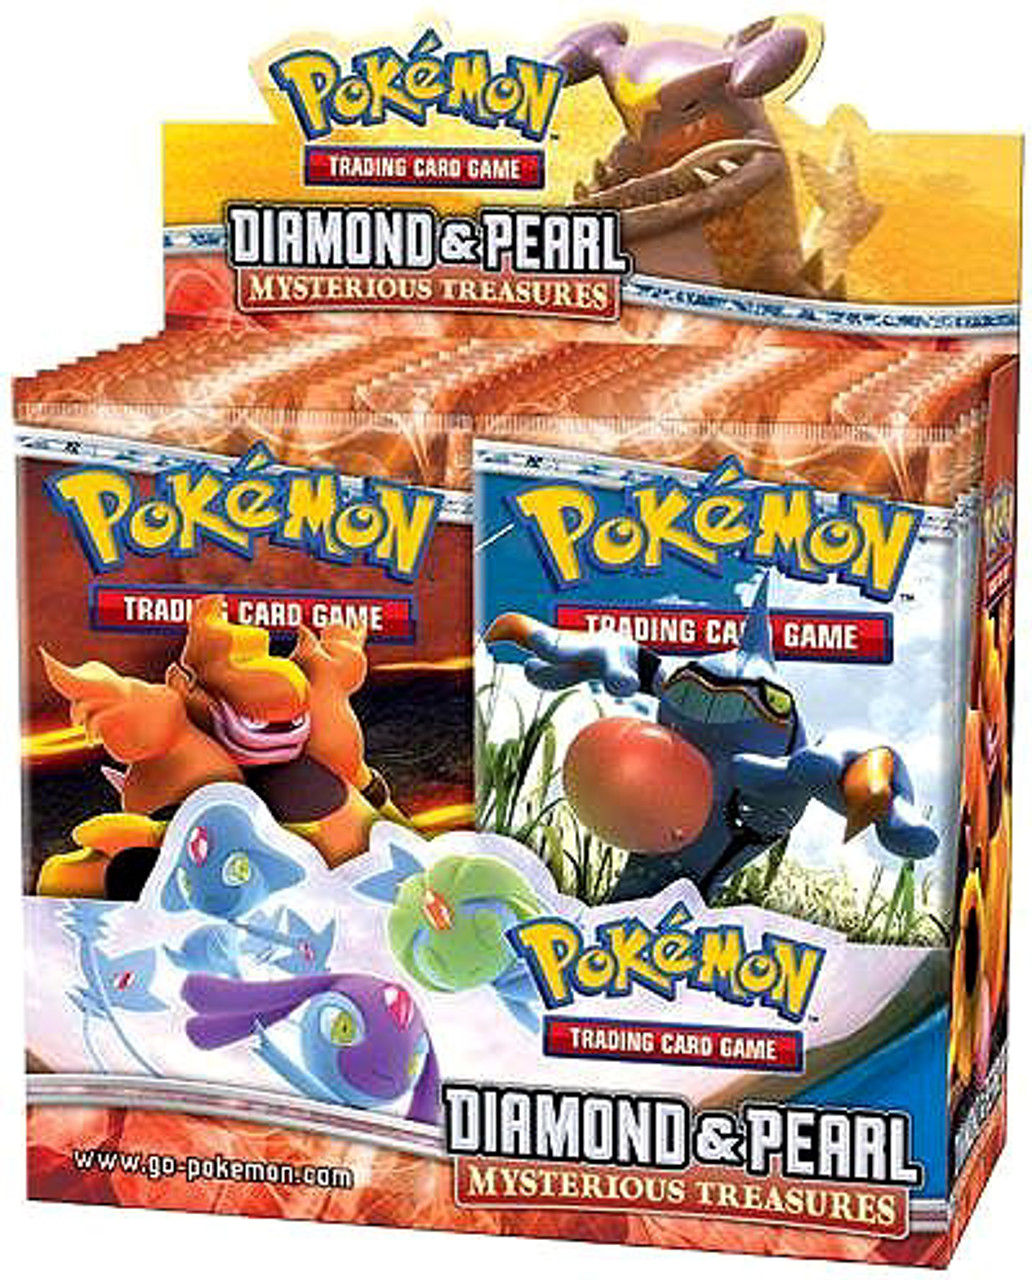 Pokemon Diamond & Pearl Mysterious Treasures Booster Box [36 Packs]